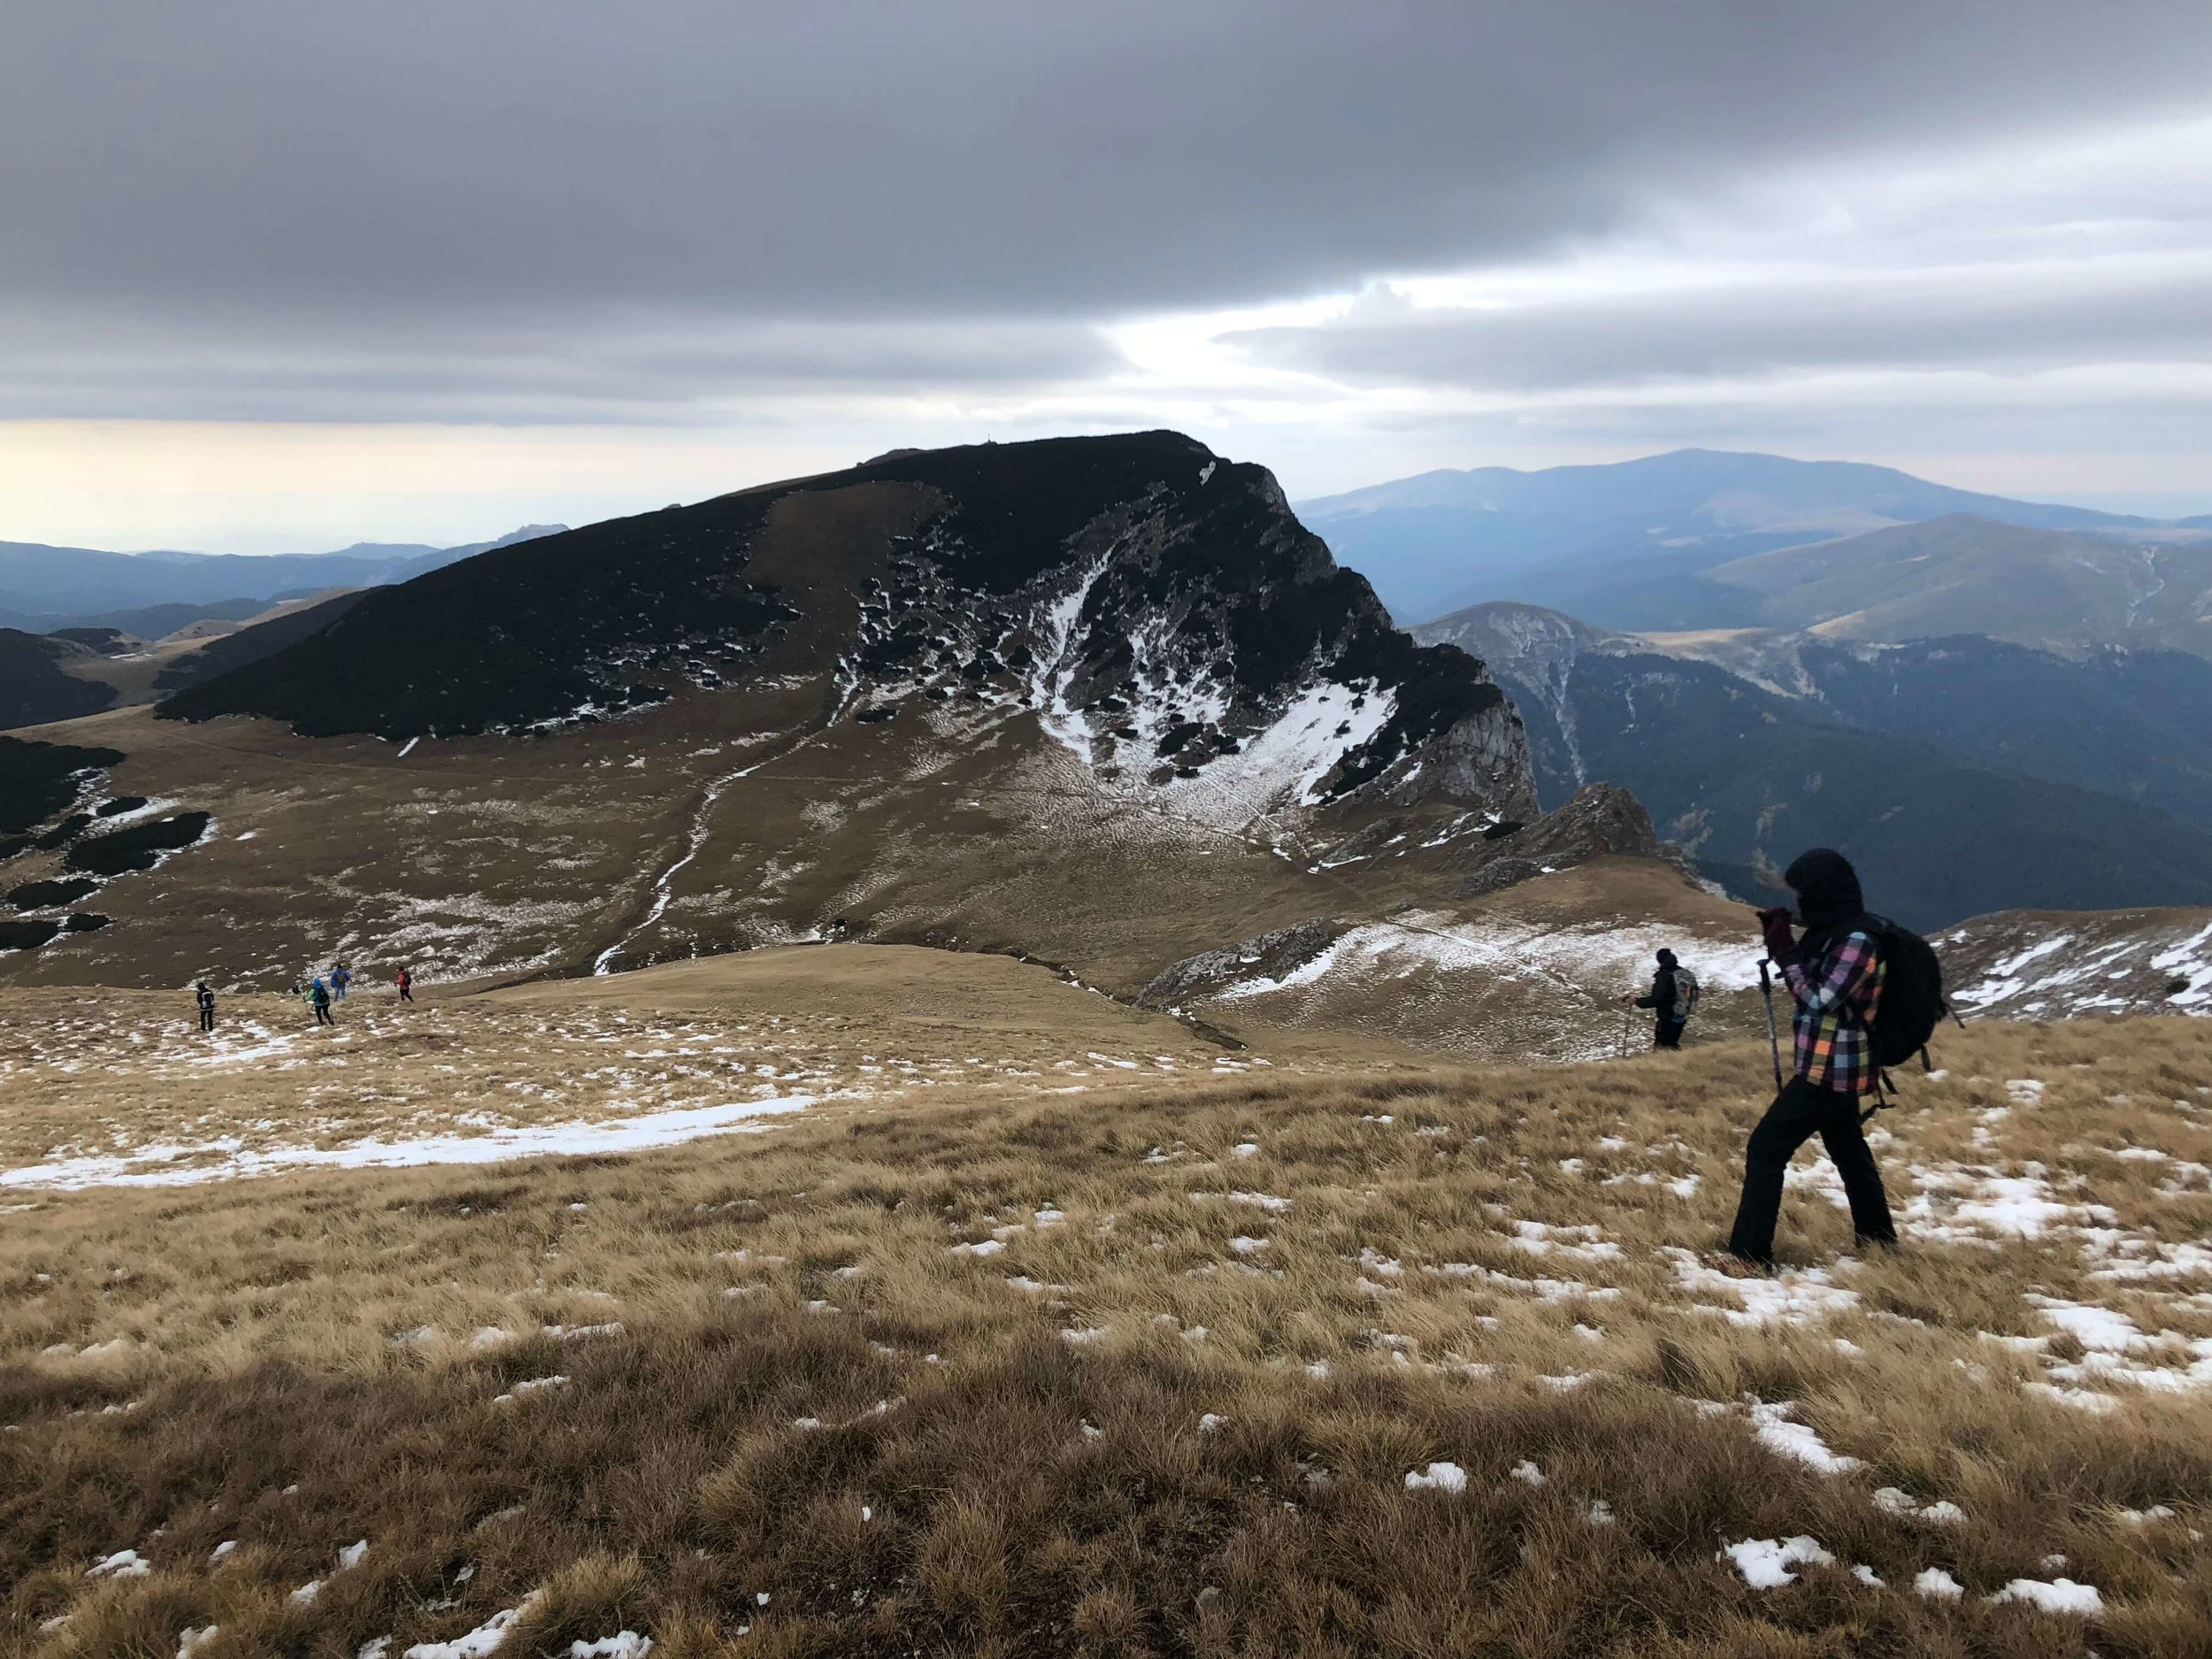 Seen here, making your initial decent from the peak of Saua Strunga in Bucegi.